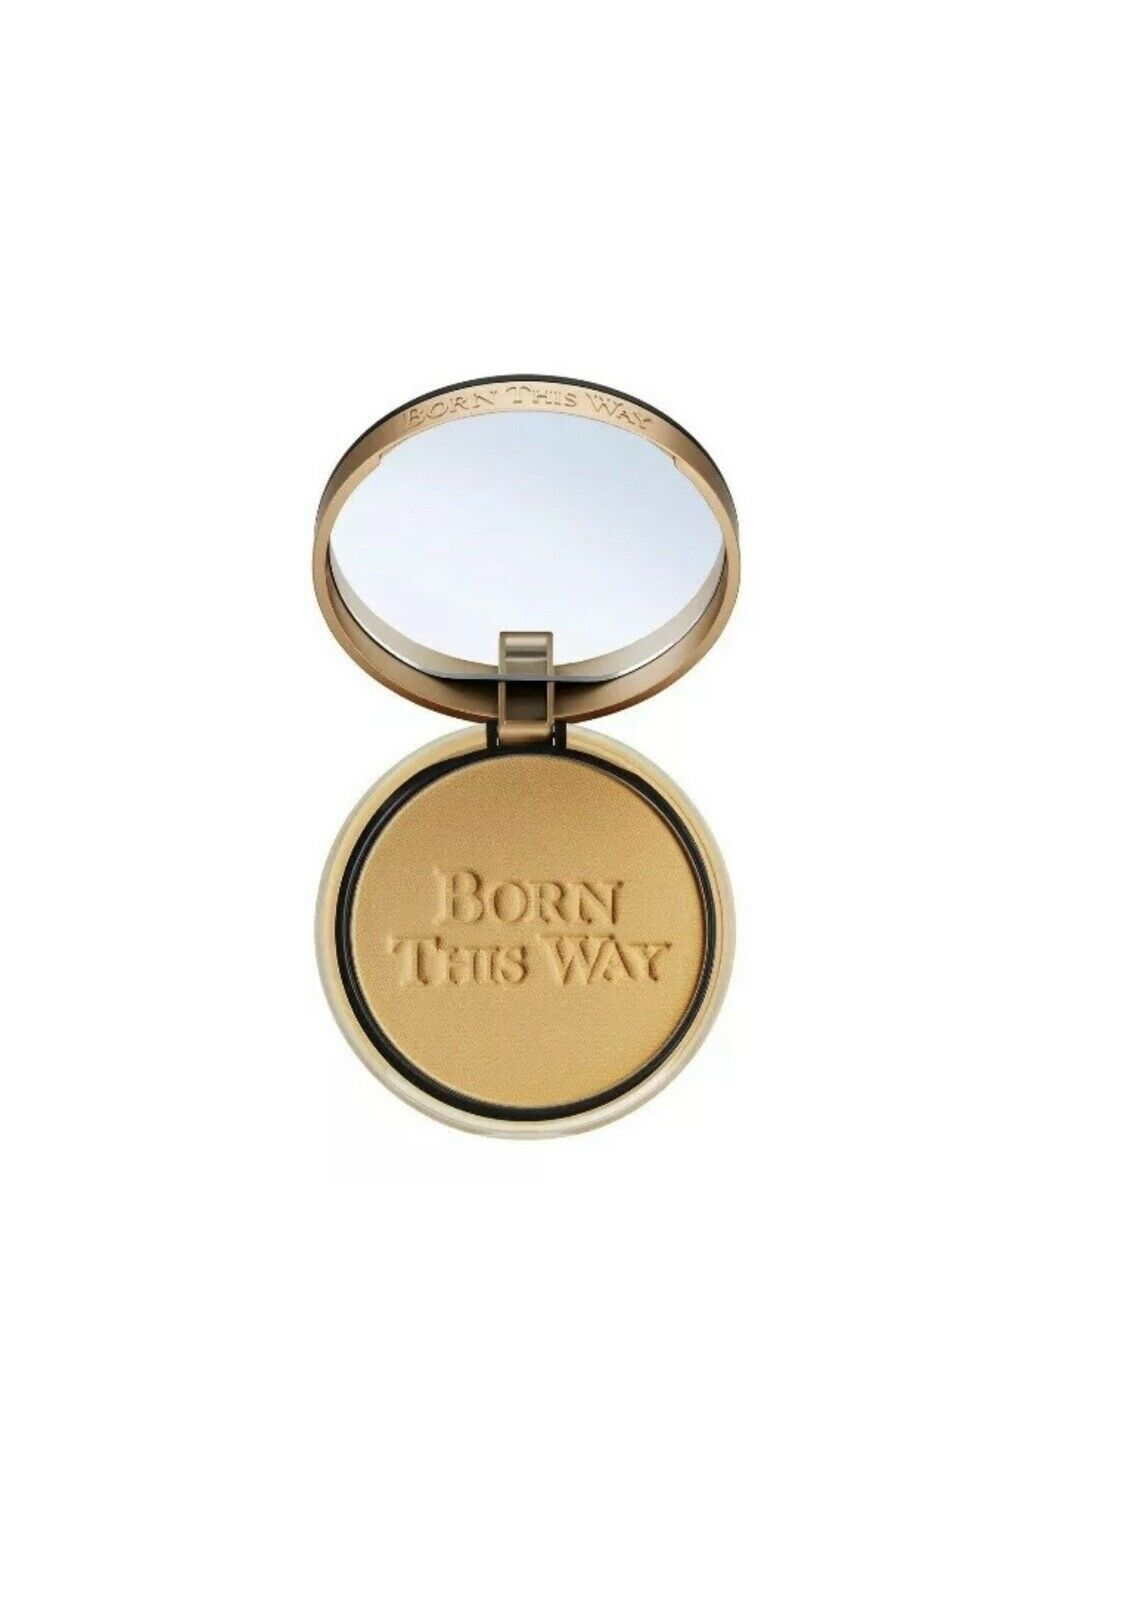 Too Faced Born This Way Complexion Powder - Latte - NIB - Full Size - $18.62